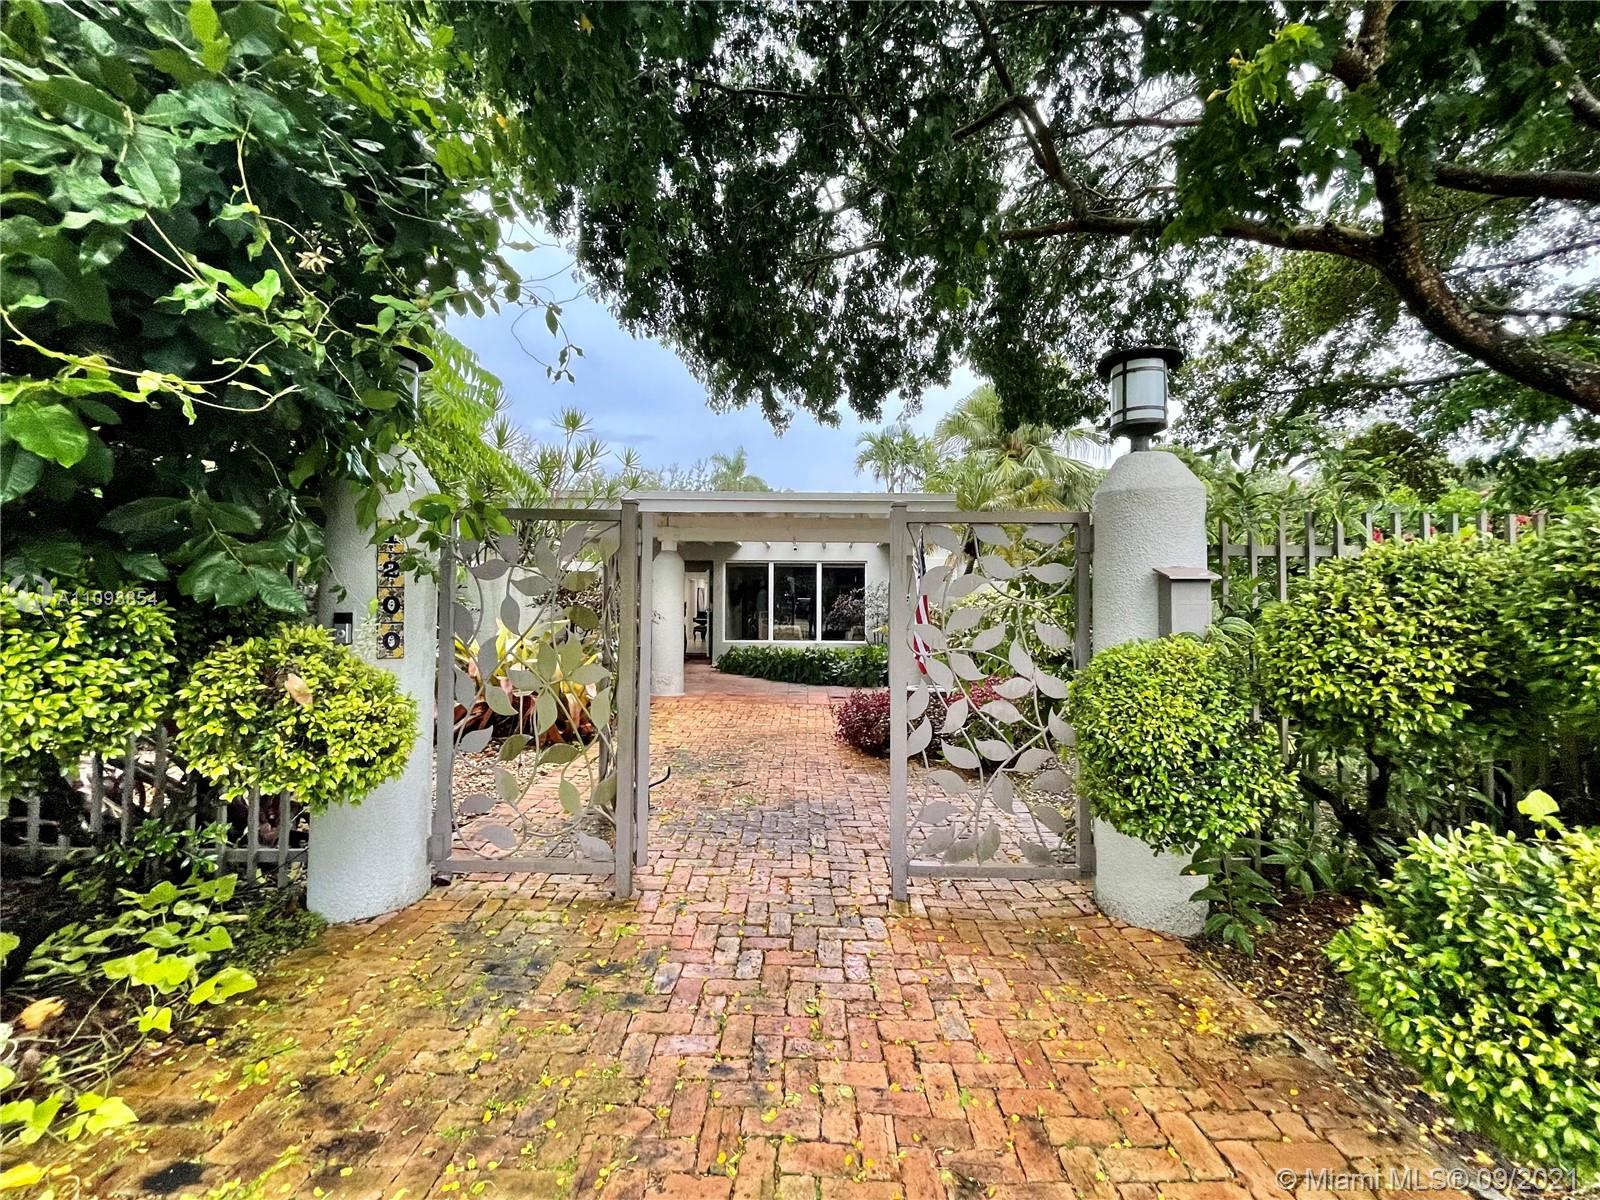 Gorgeous private peninsula home on approximately 18,000 sq ft lot, surrounded by luscious landscaping on desirable S Alhambra Ave in Coral Gables.Modern Key West style metal roof, 30 solar panels, impact windows and doors, and much more. This property has enough space to built a guest house and pool.